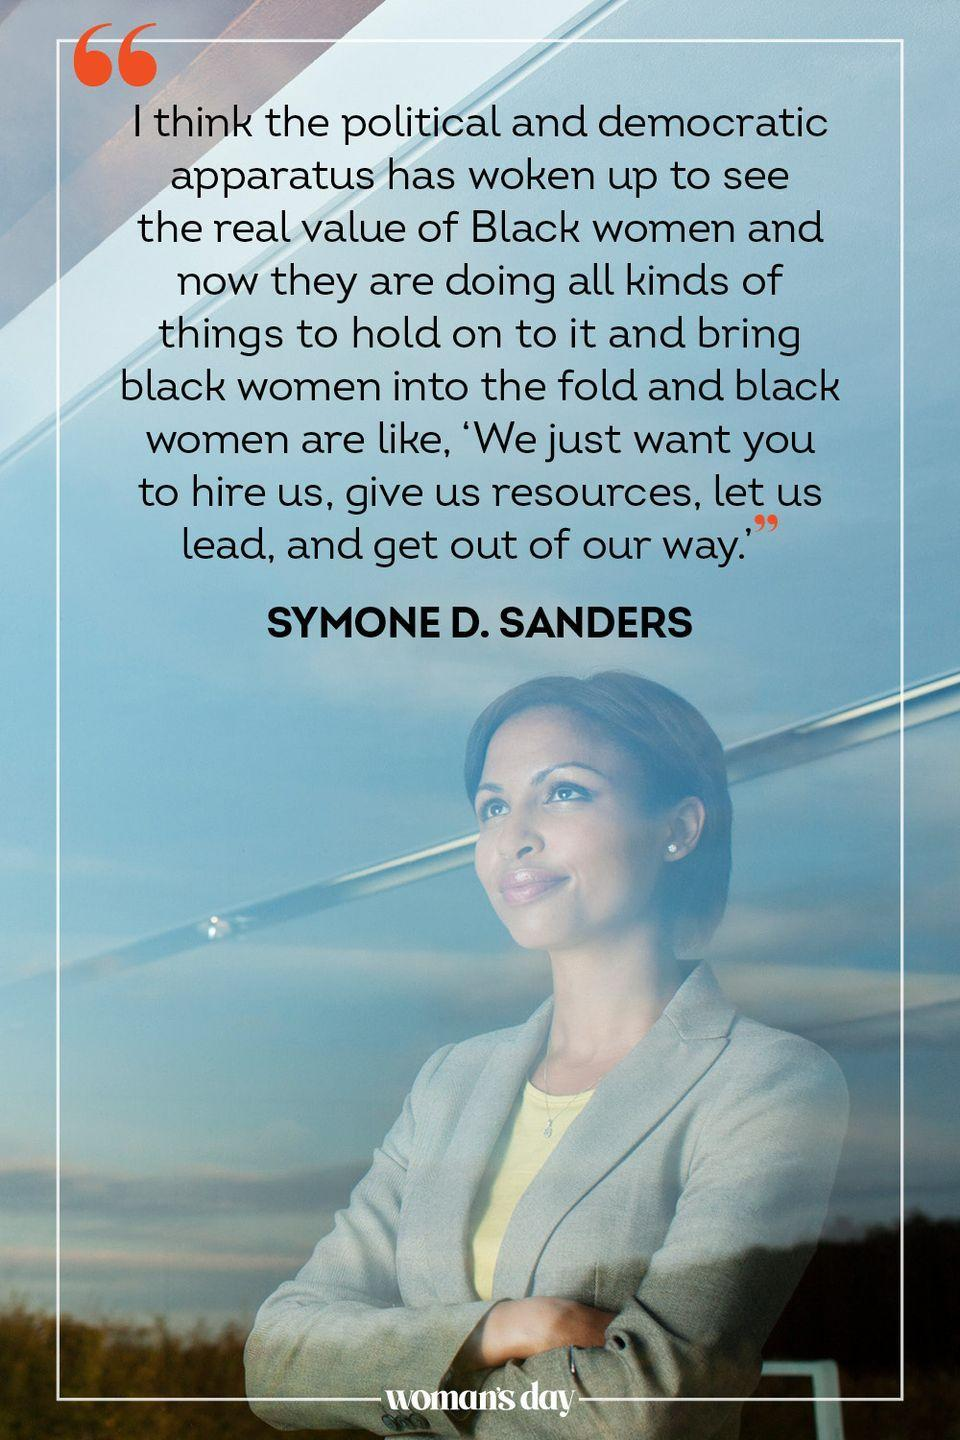 """<p>""""I think the political and democratic apparatus has woken up to see the real value of Black women and now they are doing all kinds of things to hold on to it and bring black women into the fold and black women are like, 'We just want you to hire us, give us resources, let us lead, and get out of our way.'"""" — Symone D. Sanders, political strategist.</p>"""